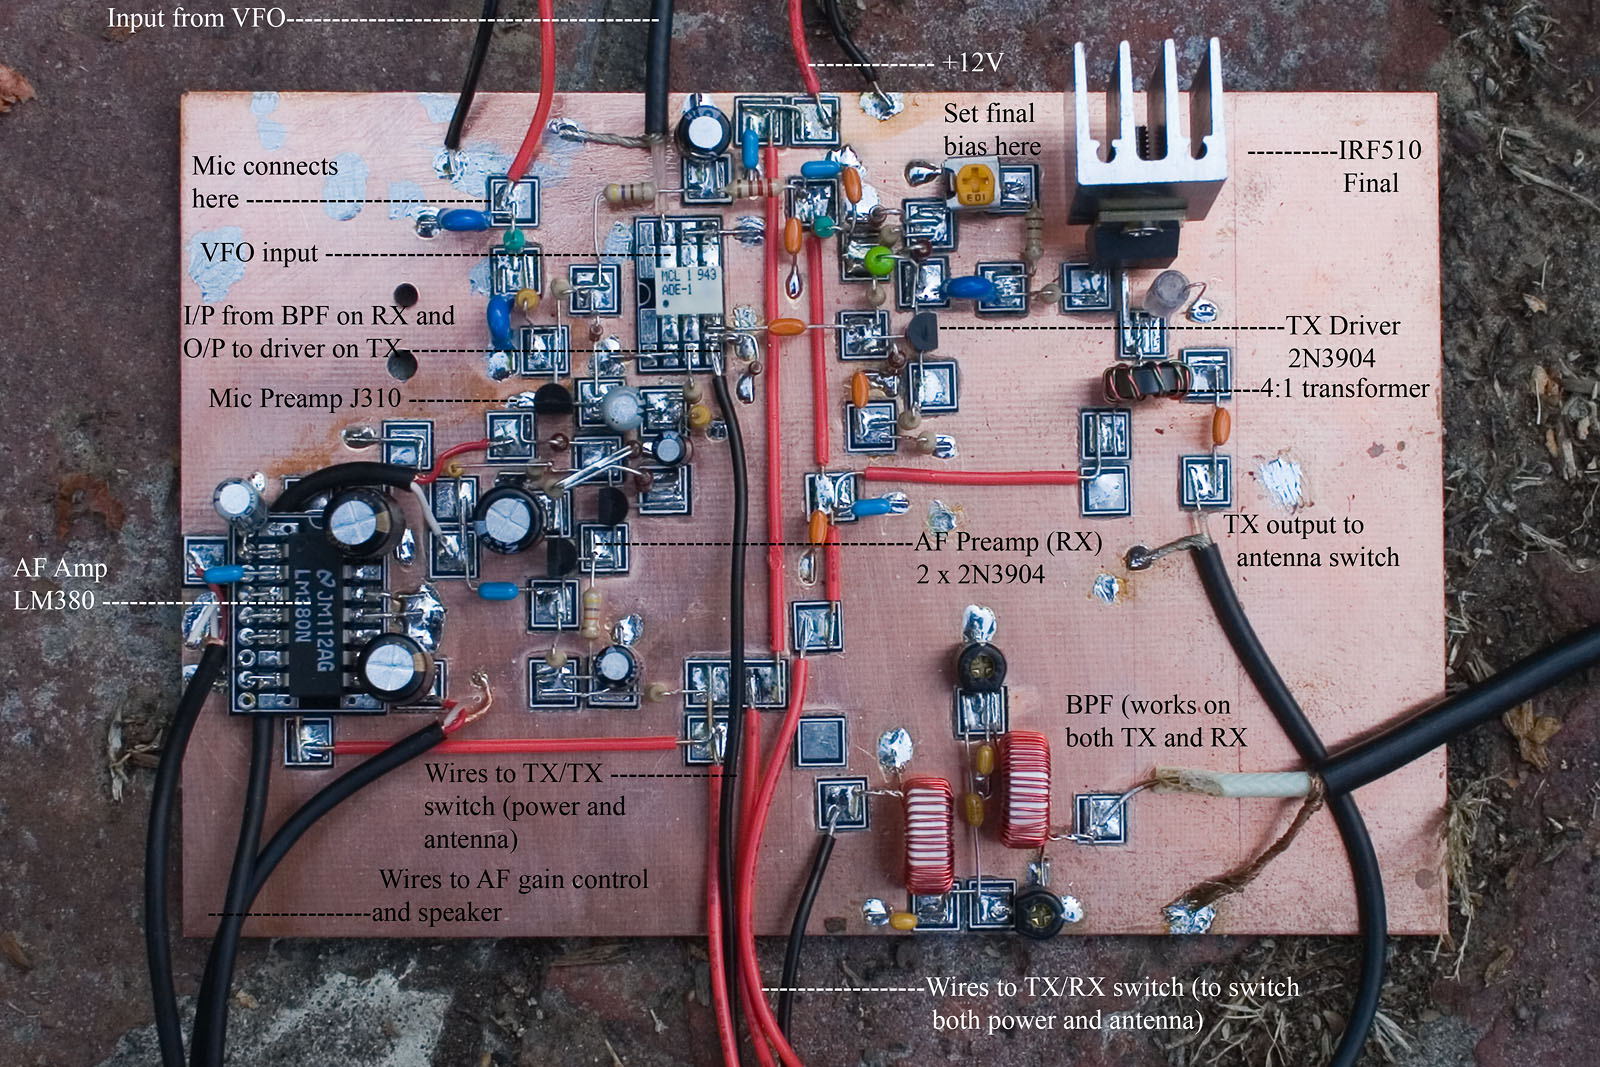 The Dsb80 Part 2 And A New Addition To Shack Dave Richards Aa7ee Amplifier Described Here Uses Two Small Amplifiers Like Lm380 Mounted If You Saw Earlier Iteration Of This Board From Previous Post Youll See That I Have Removed On Vfo In Its Place Is Mic Amp For